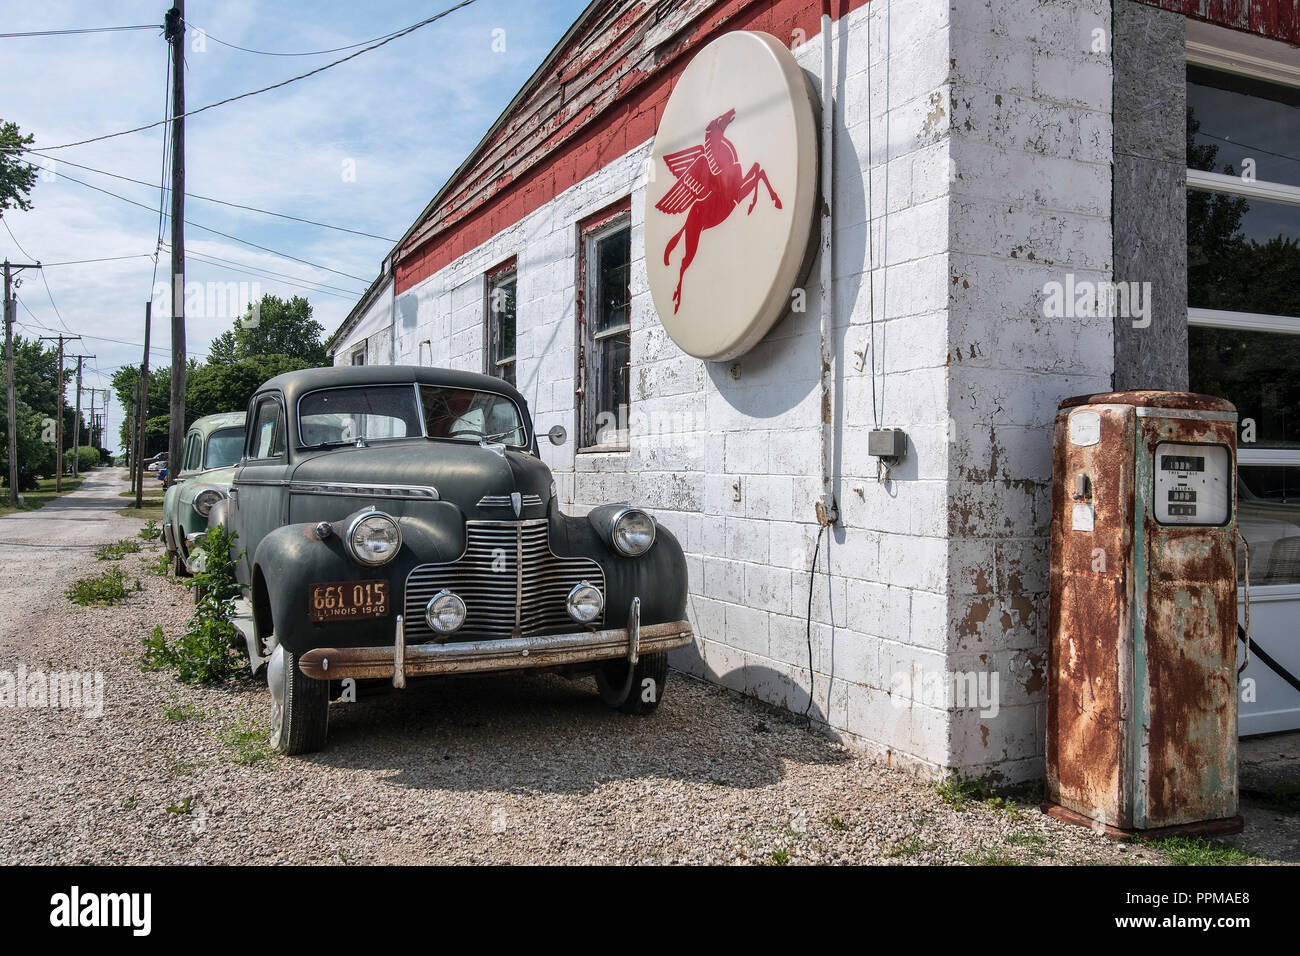 gas station cars on the route stock photos & gas station cars on the